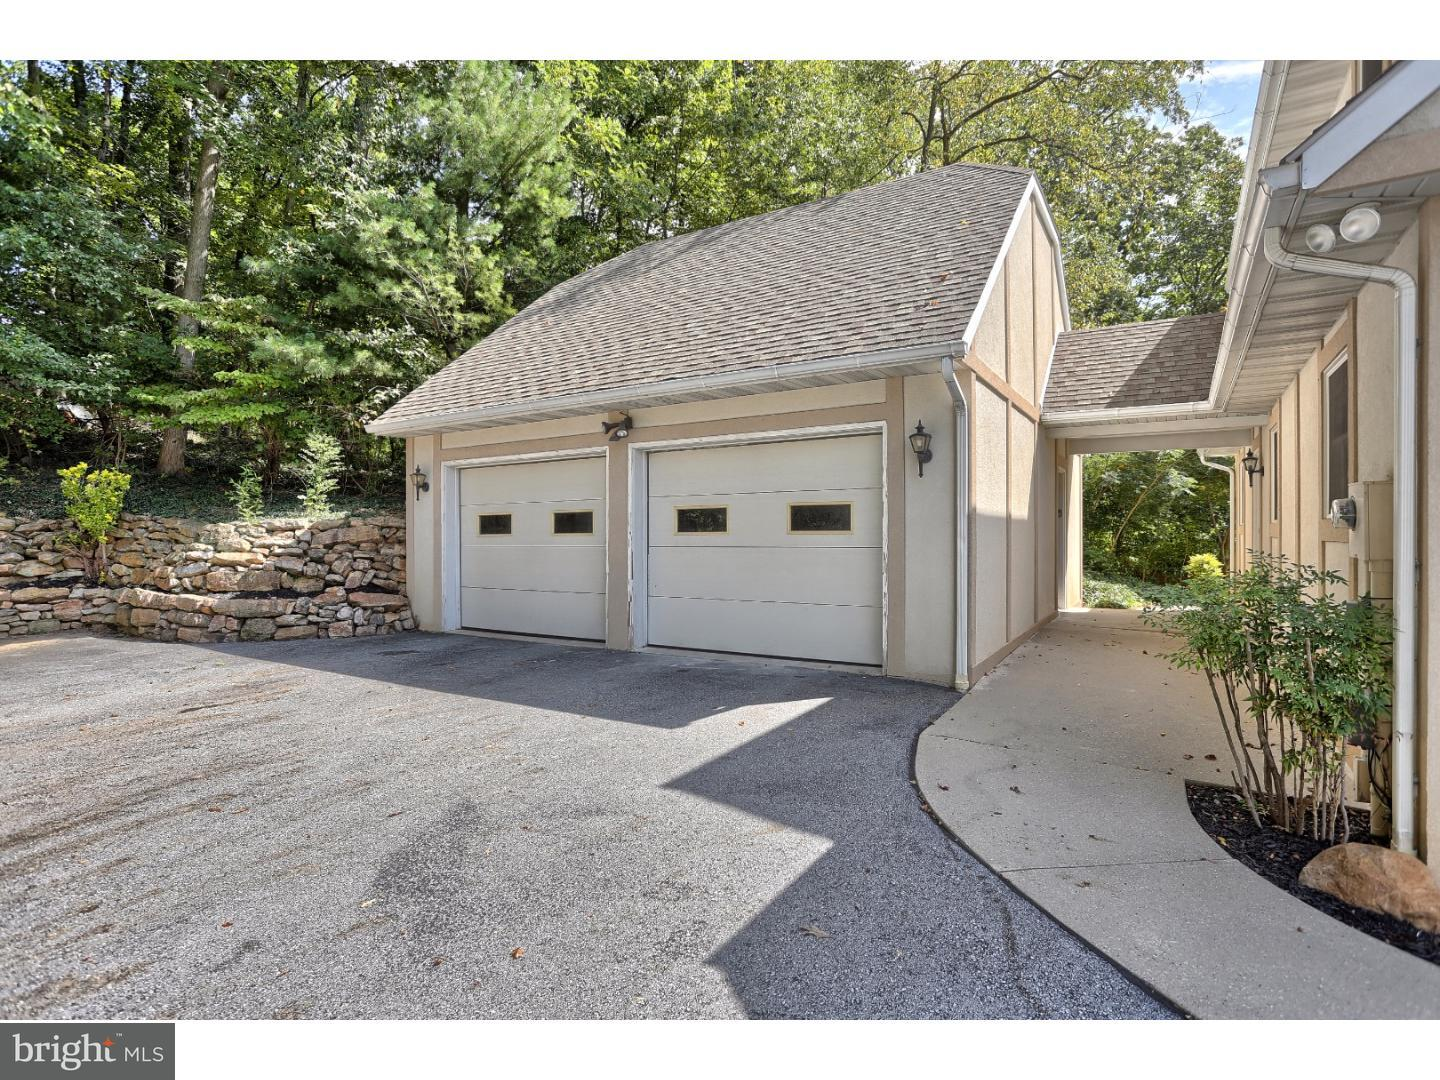 3907 KLINE AVE, READING - Listed at $219,900, READING